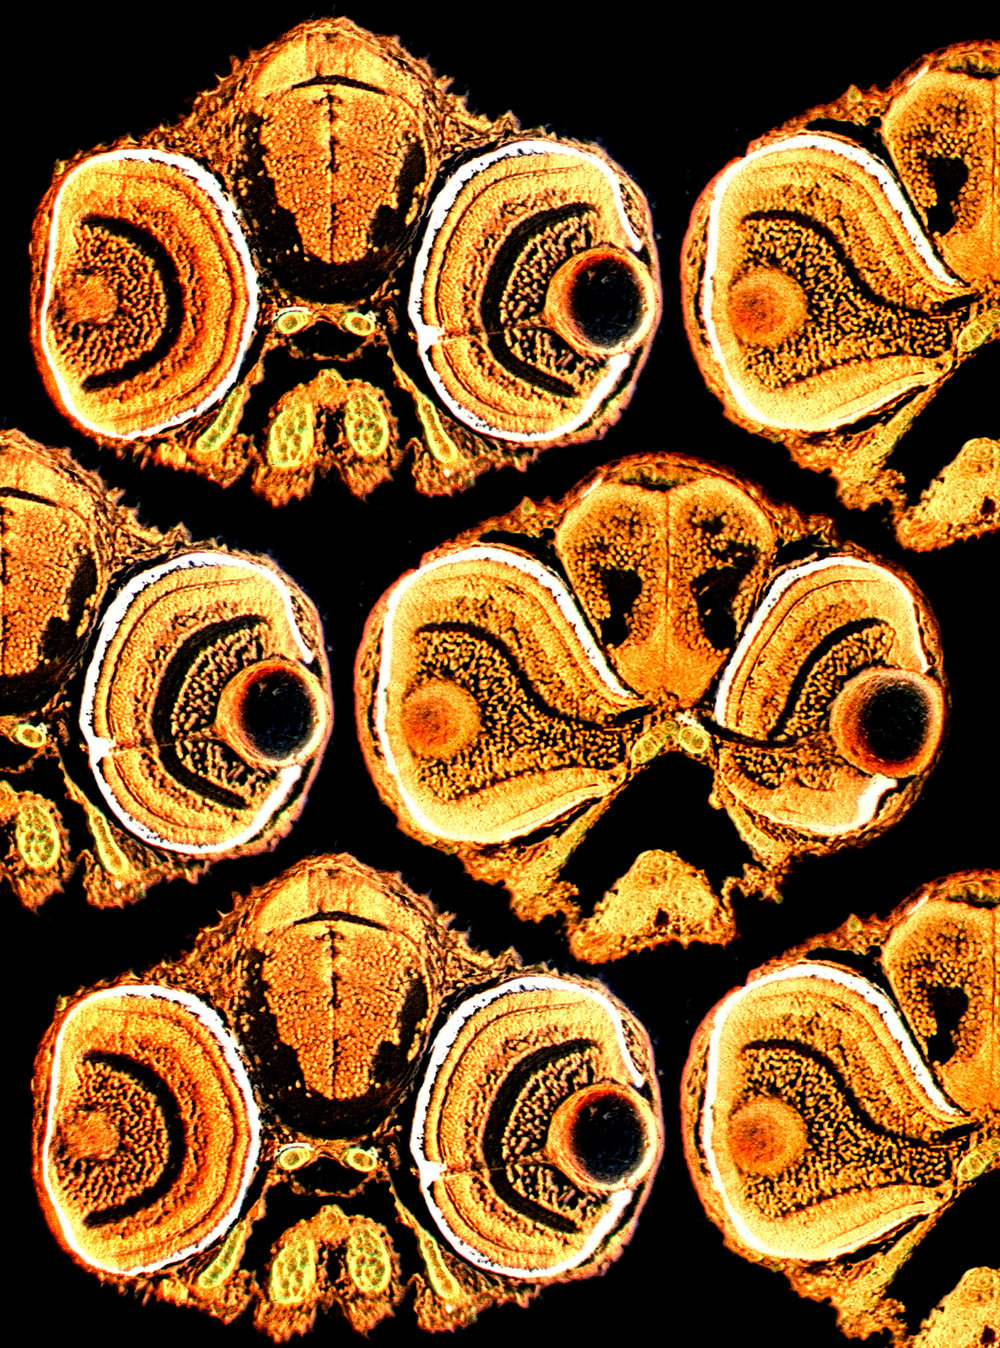 Transverse sections of zebrafish heads frontal view (orange) (cover)